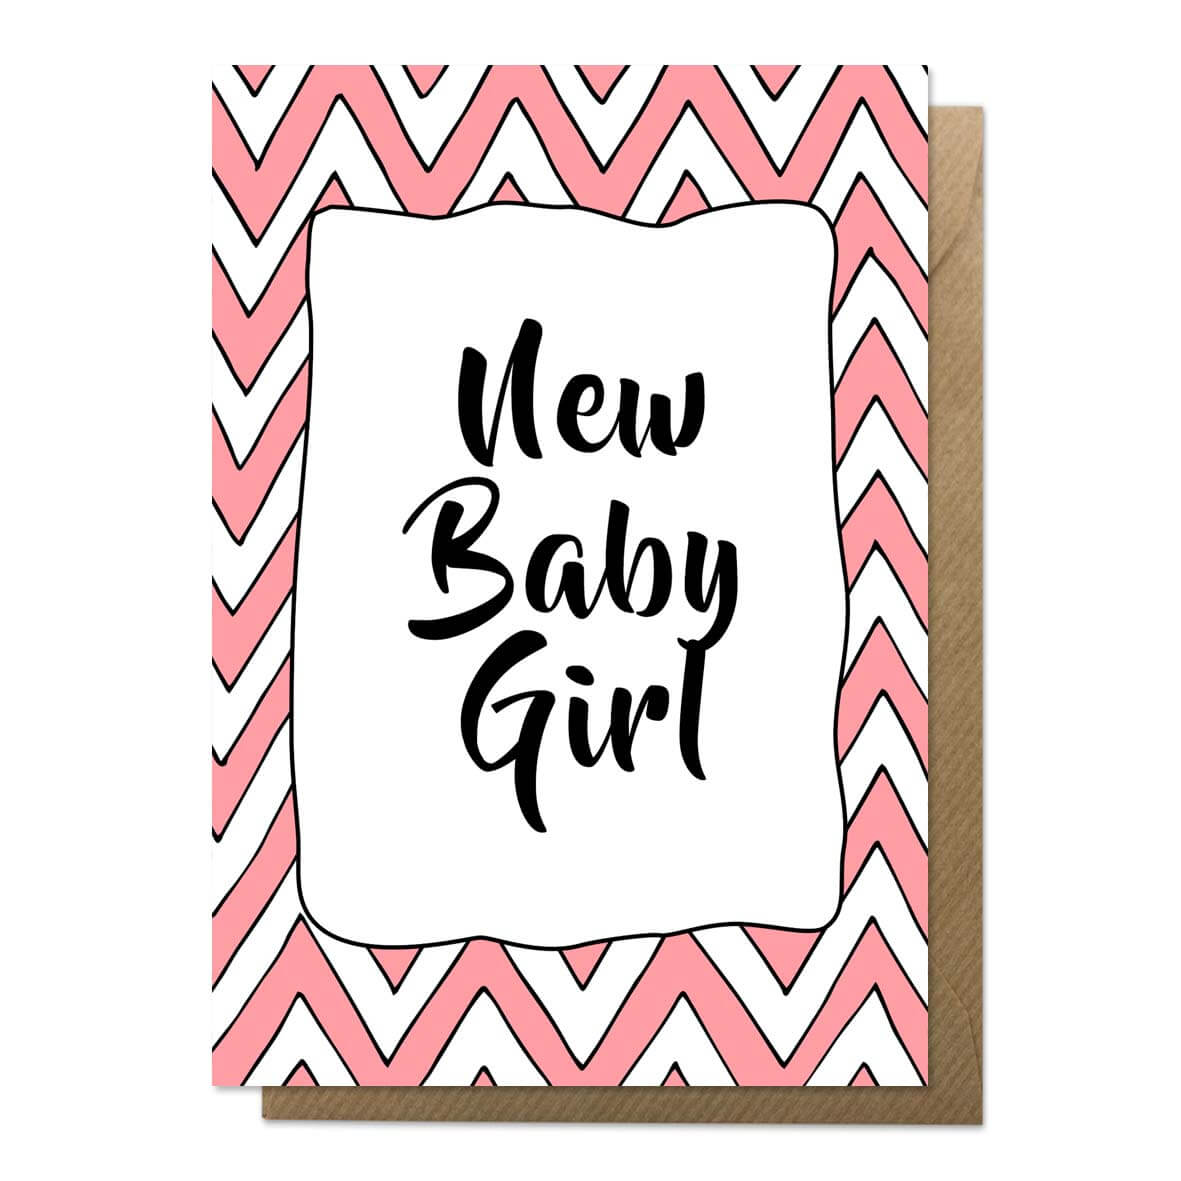 Pink and white patterned new baby card with brown envelope